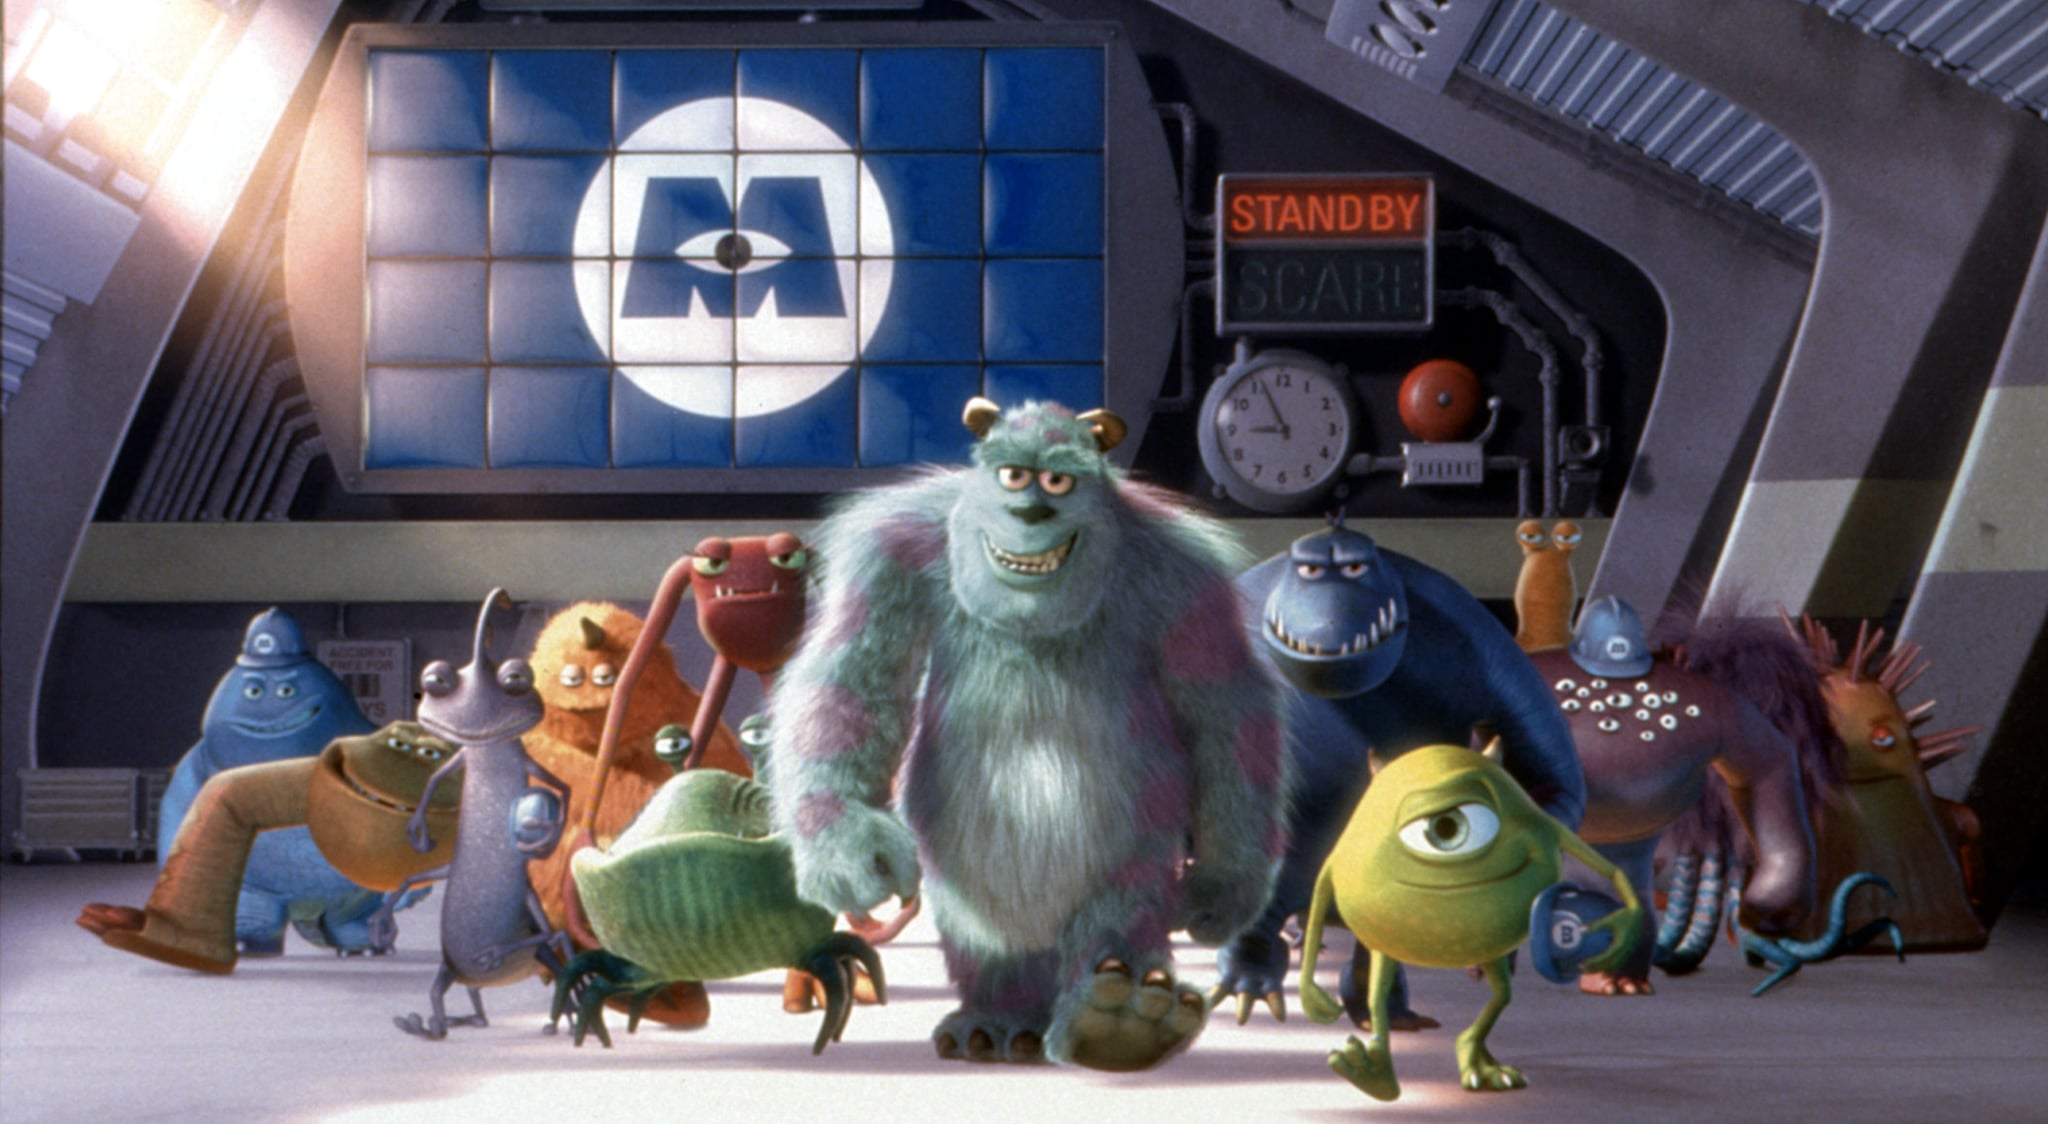 MONSTERS INC., Randall Boggs, Sulley, Mike Wazowski, 2001, (c) Buena Vista/courtesy Everett Collection